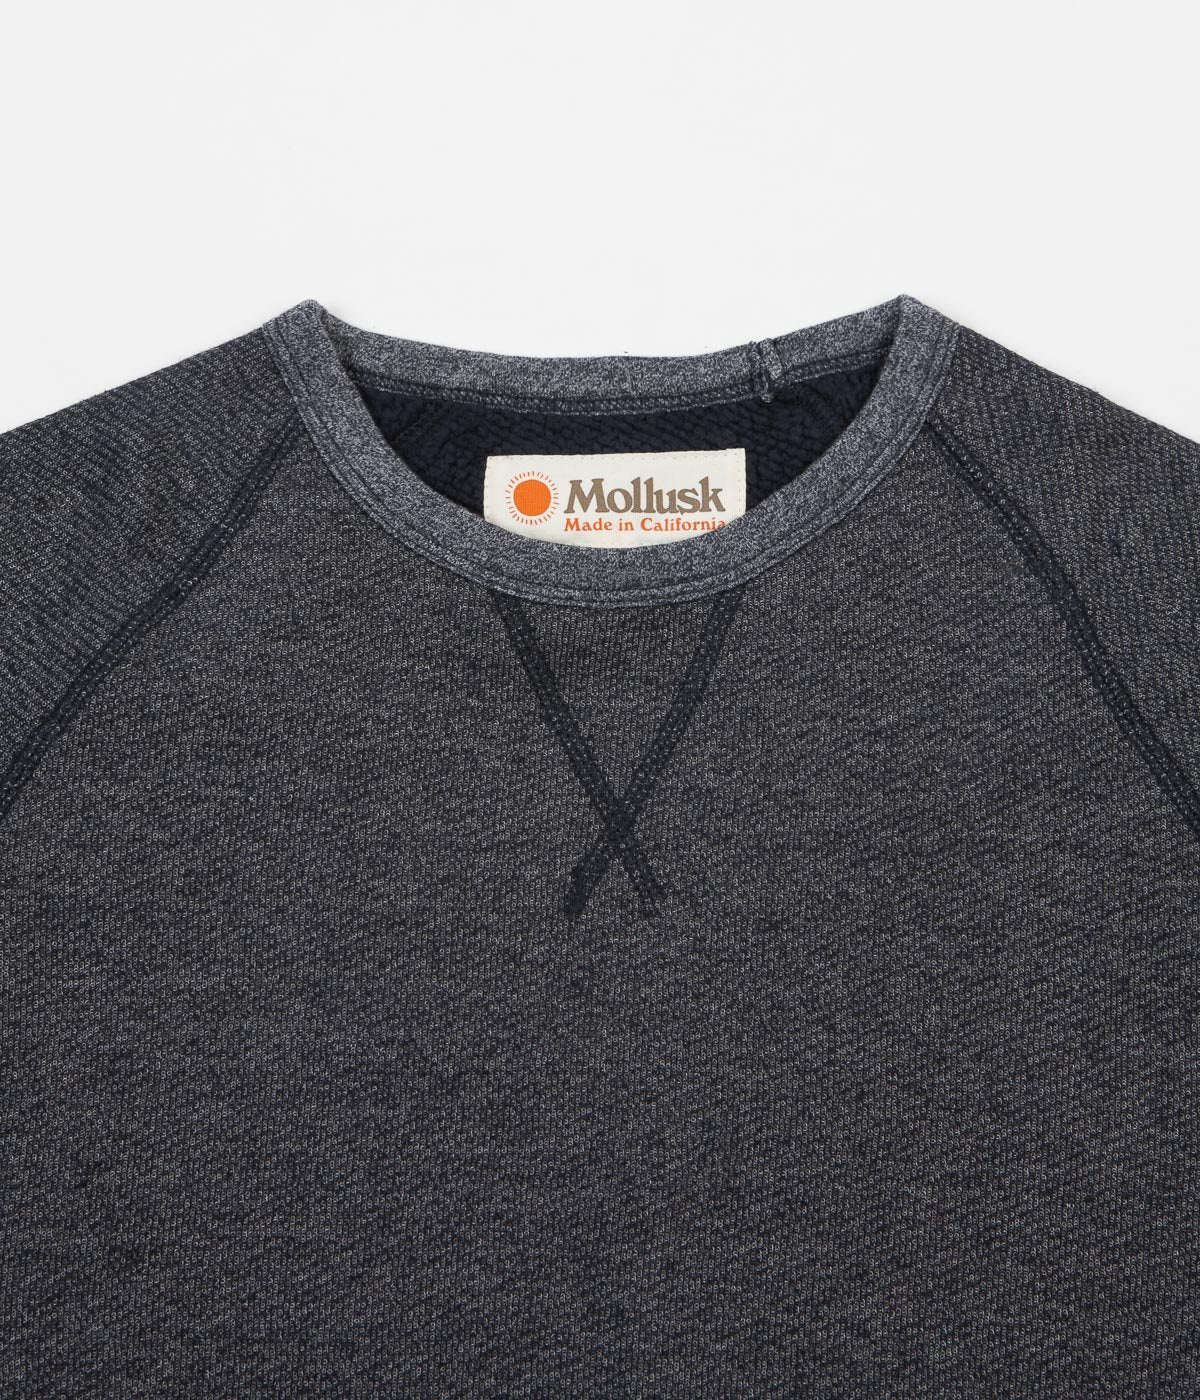 Mollusk Heavy Terry Crewneck Sweatshirt - Faded Navy